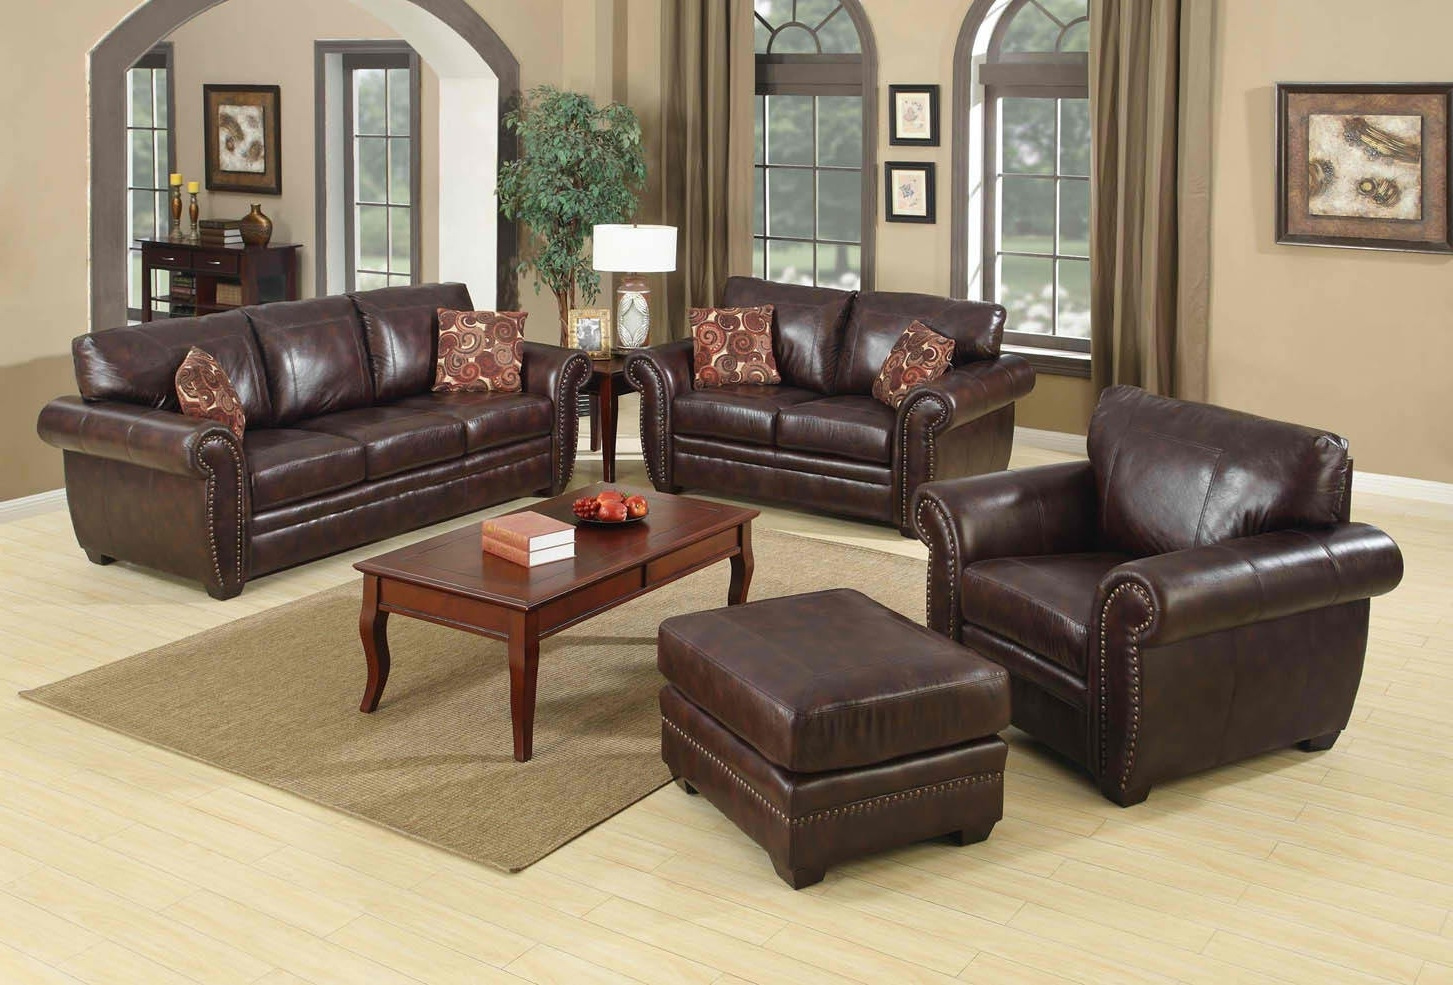 Well Known Brown Sofa With Square Wooden Table Thats The Color Matches With Intended For Brown Sofa Chairs (View 15 of 15)